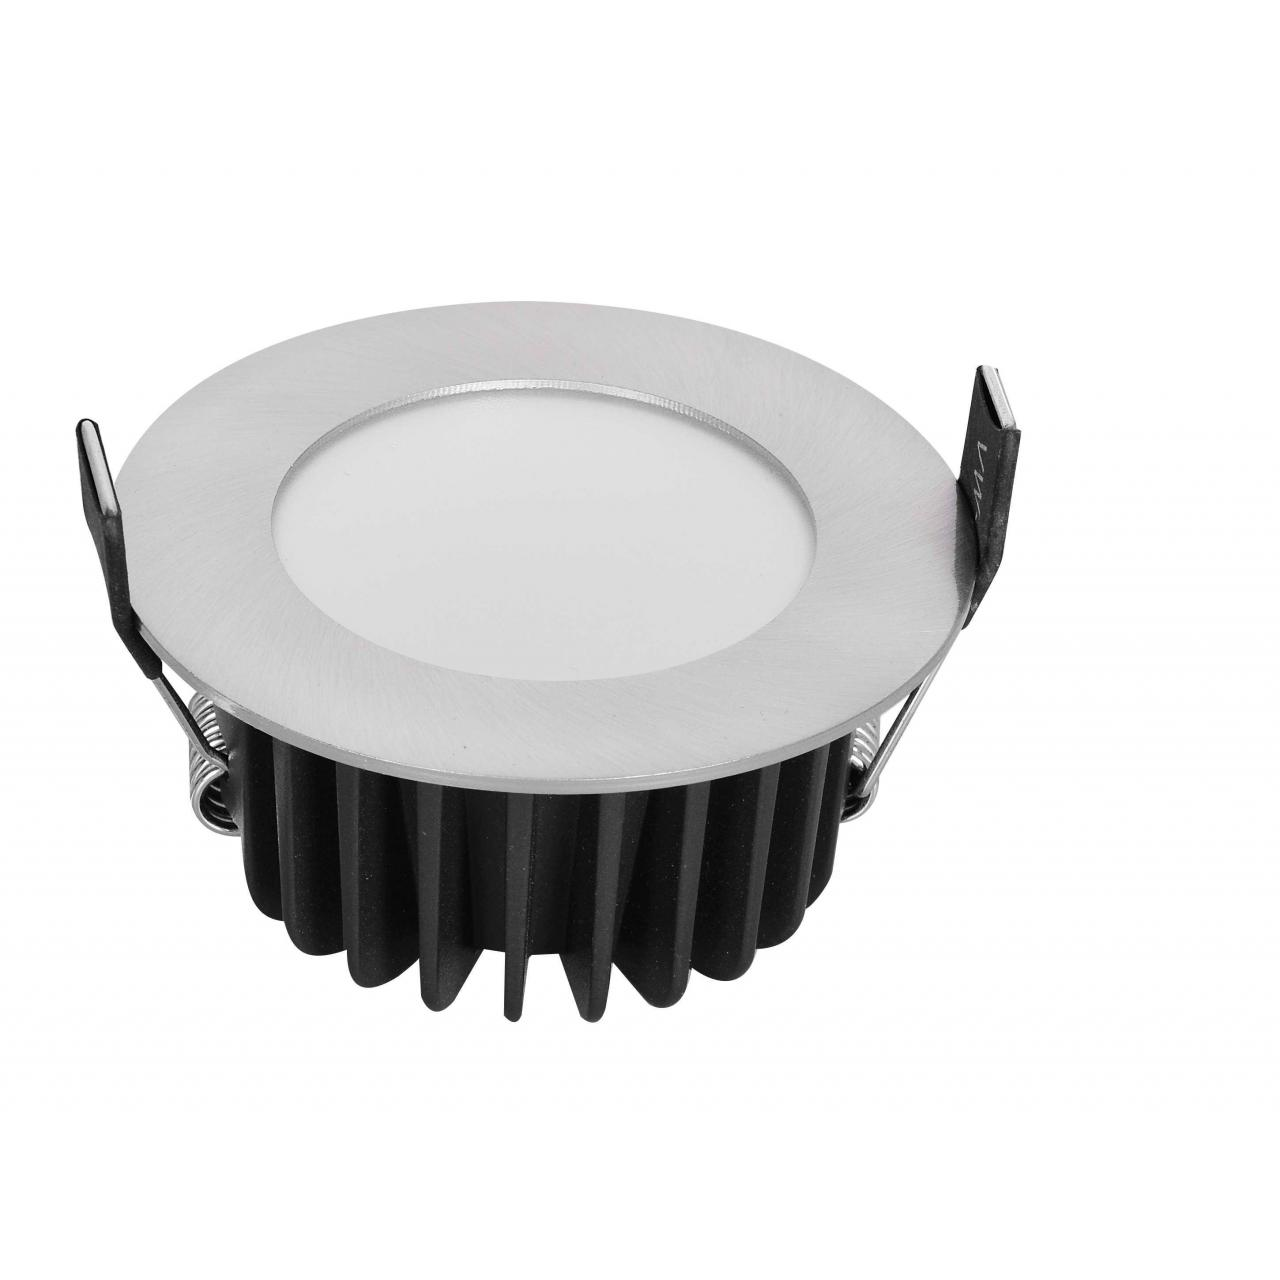 Quality B0103 die-casting aluminum SMD chips Downlight LED Downlights for sale